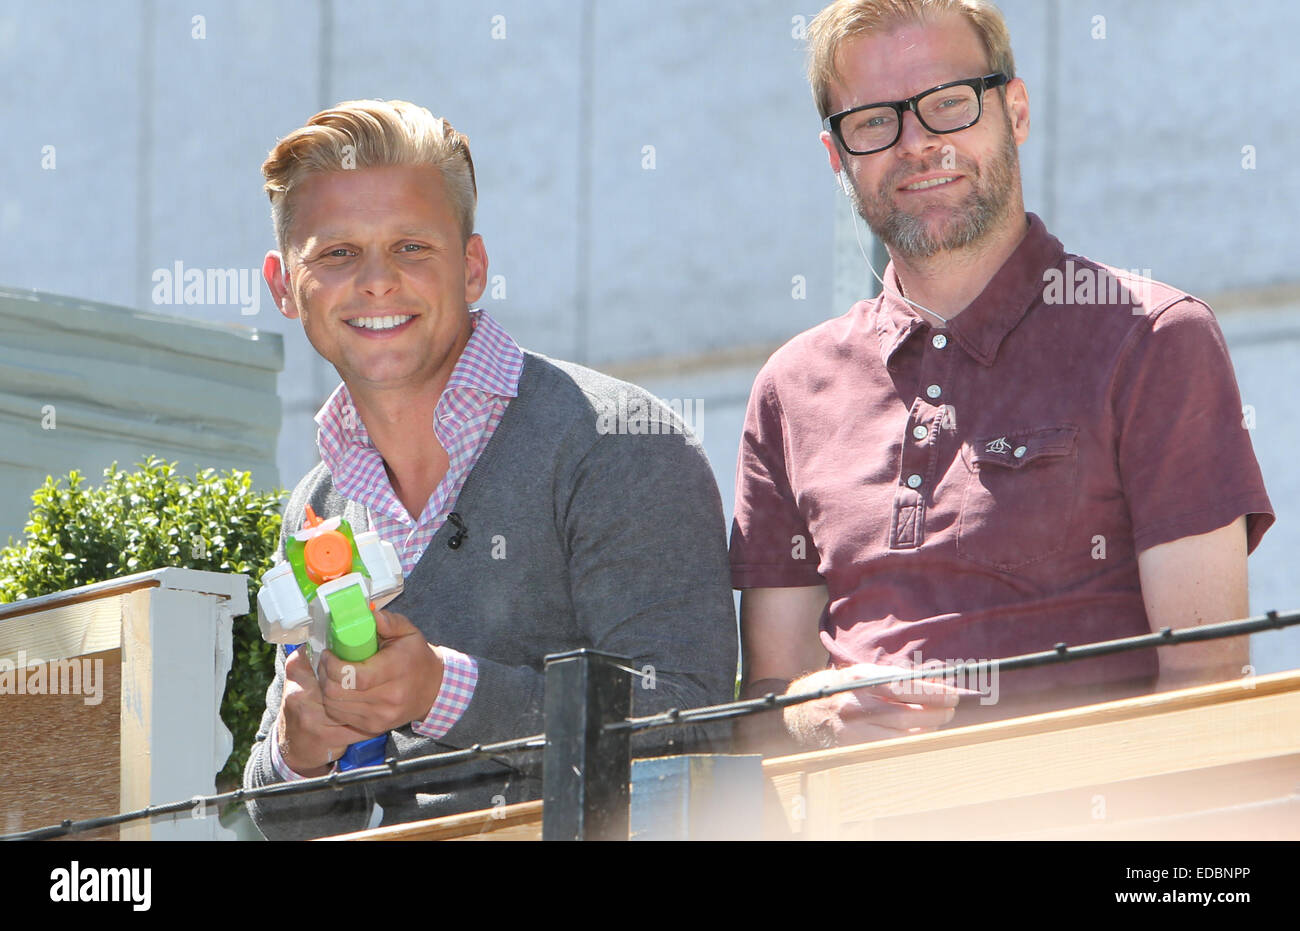 jeff brazier squirting water at the loose women during filming stock